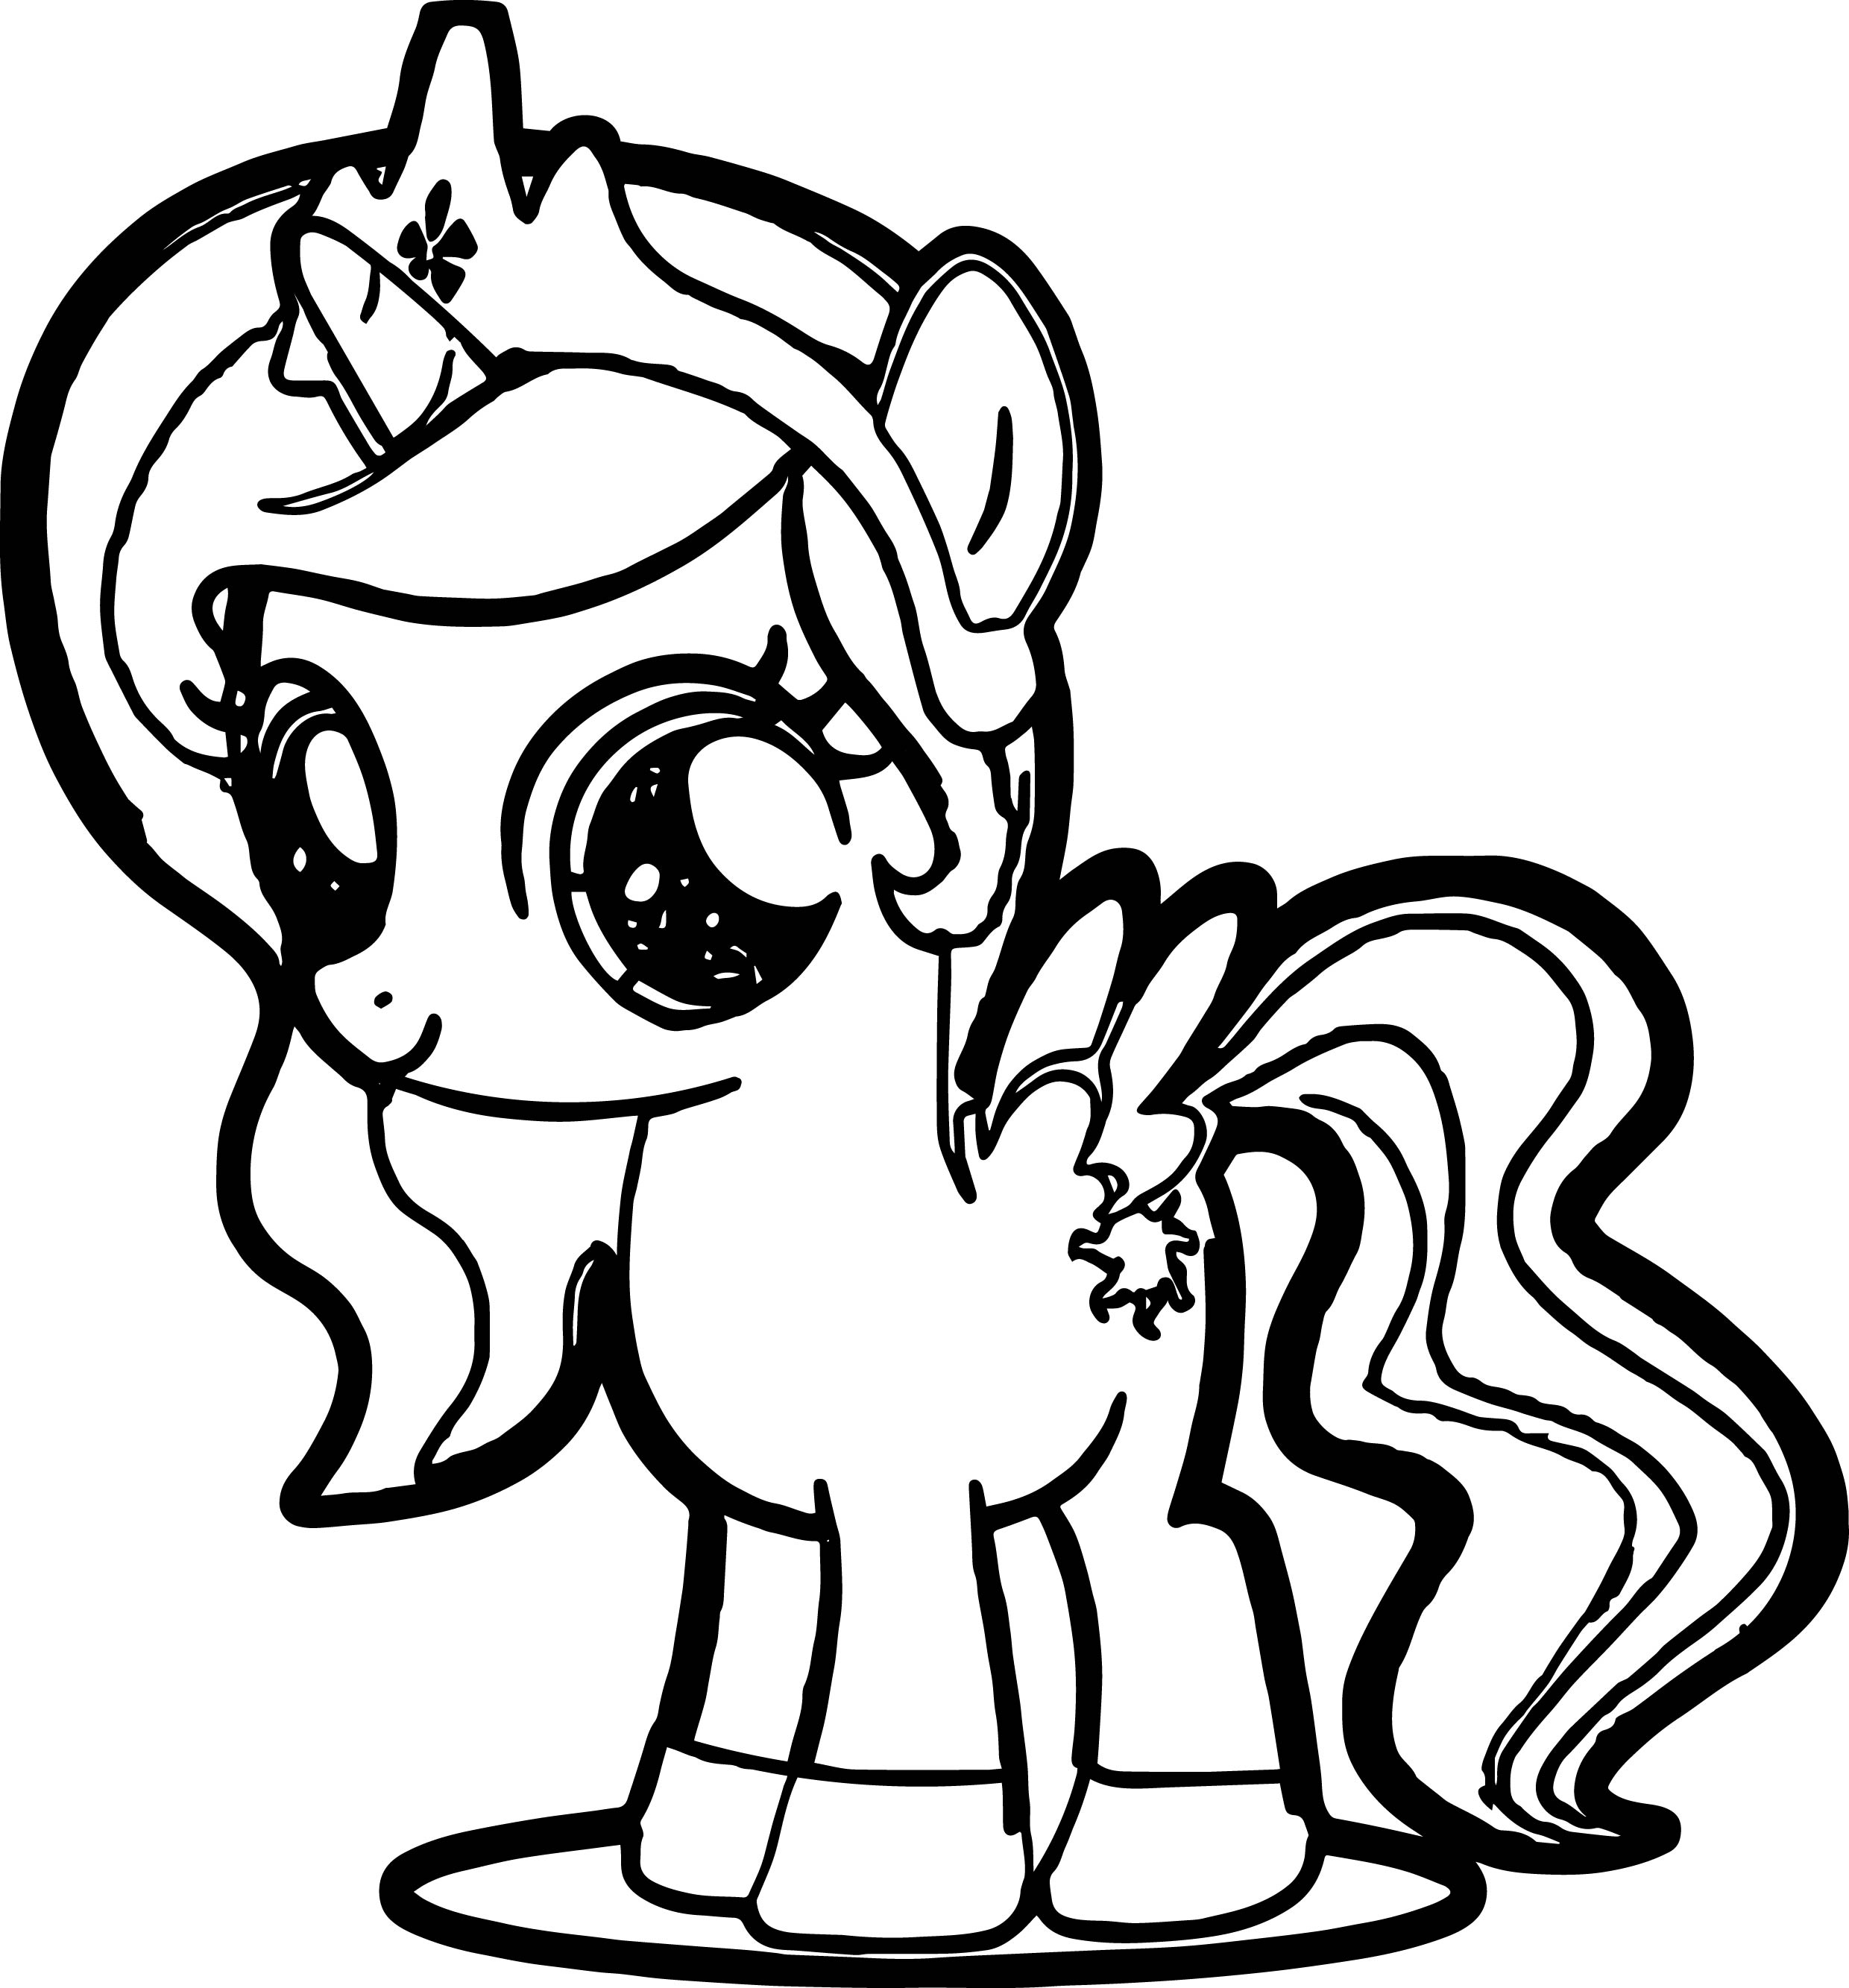 mlp coloring page my little pony coloring pages mlp coloring page